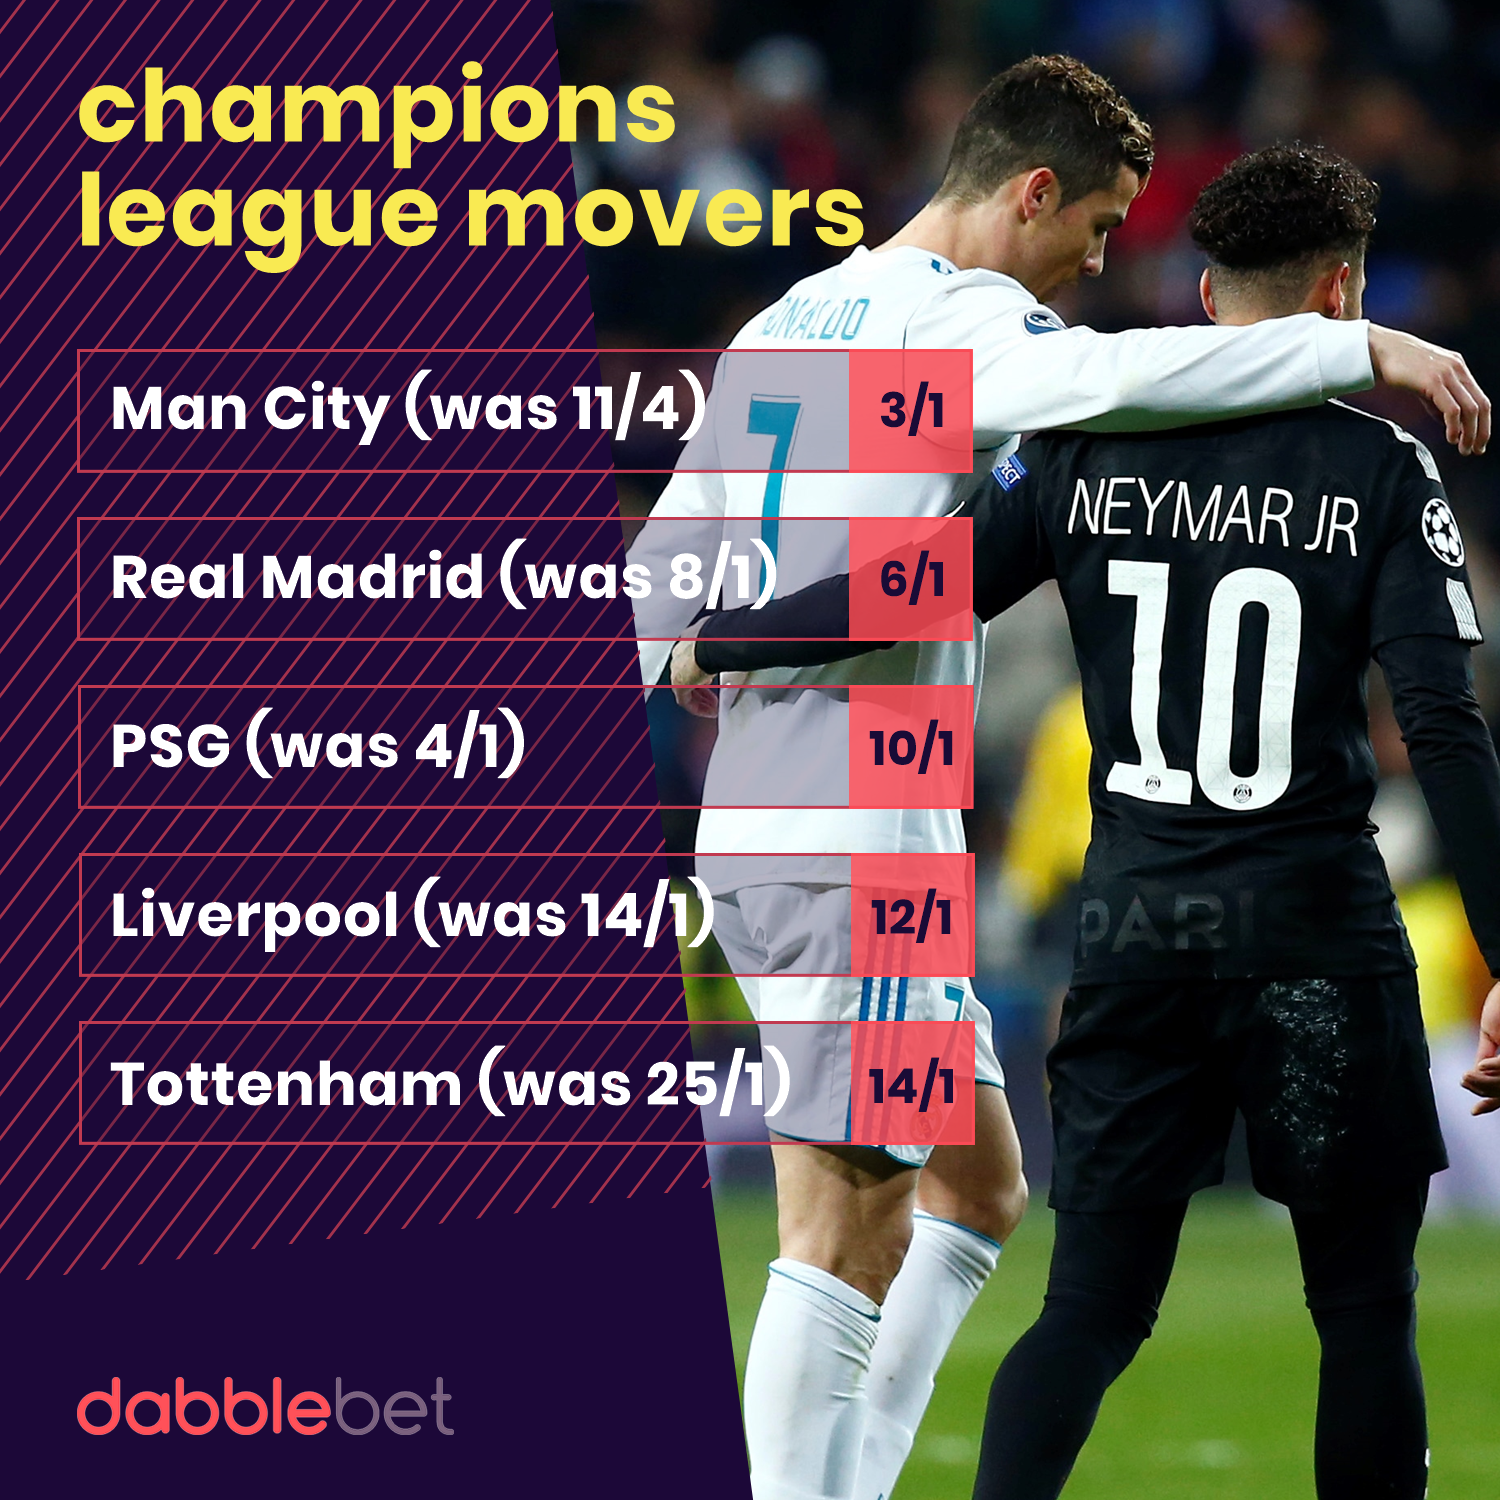 betting odds for champions league